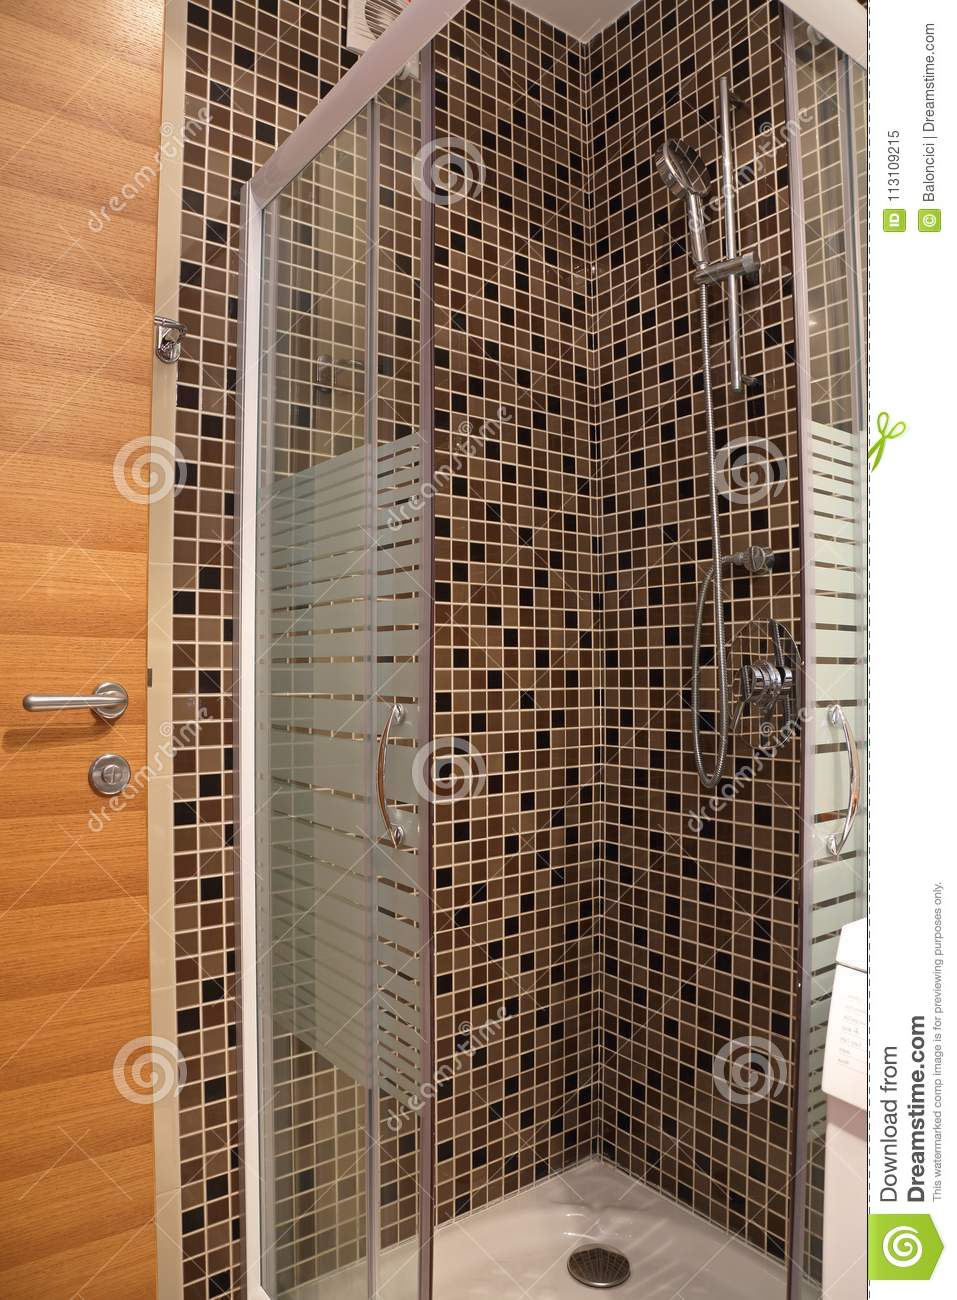 Shower Cabin stock image. Image of ceramic, modern, tile - 113109215